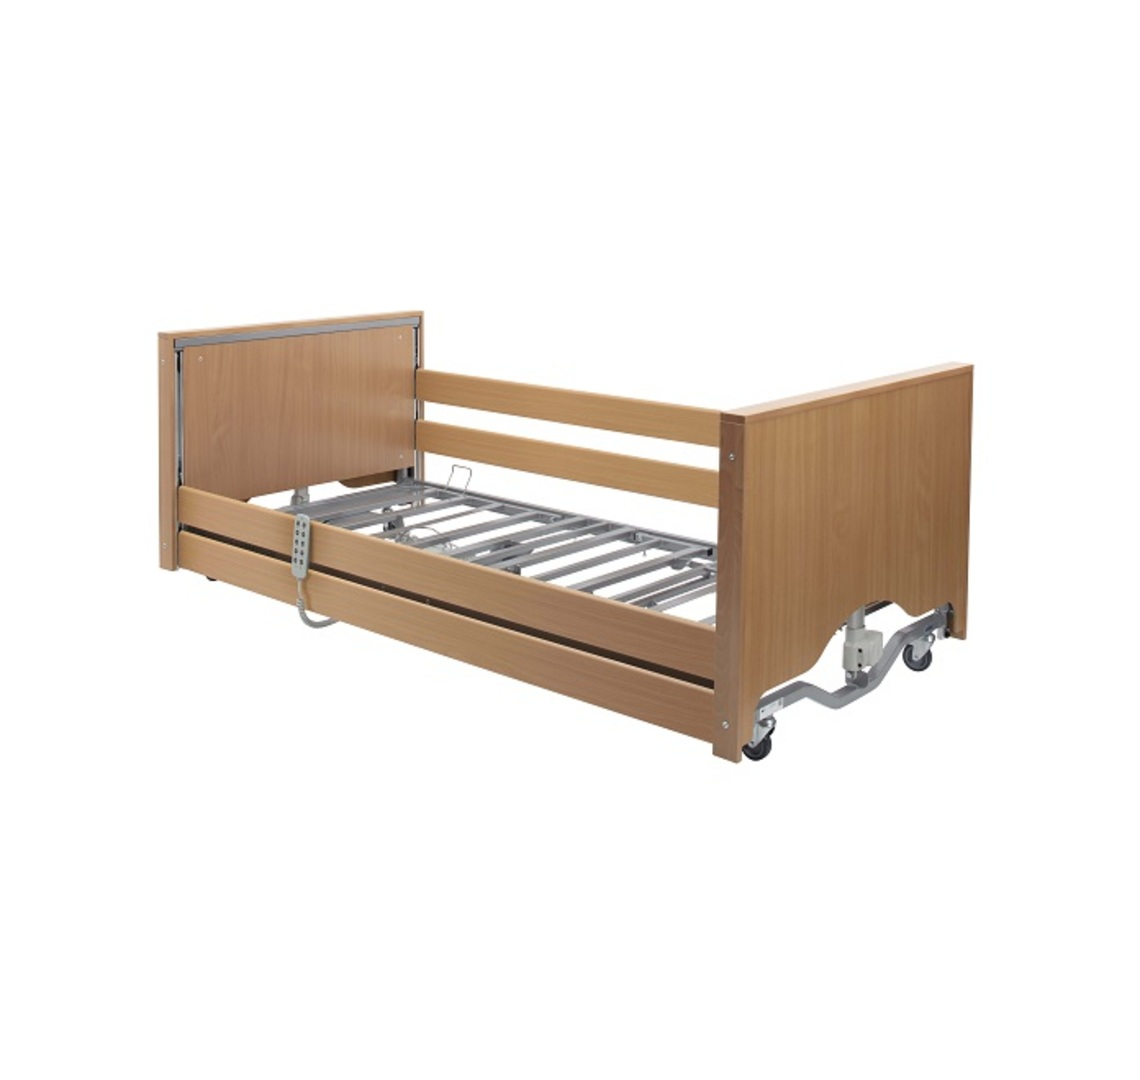 Casa Elite Low Bed with Wooden Side Rail Kit + Delivery & Installation - Beech | Medical Supermarket